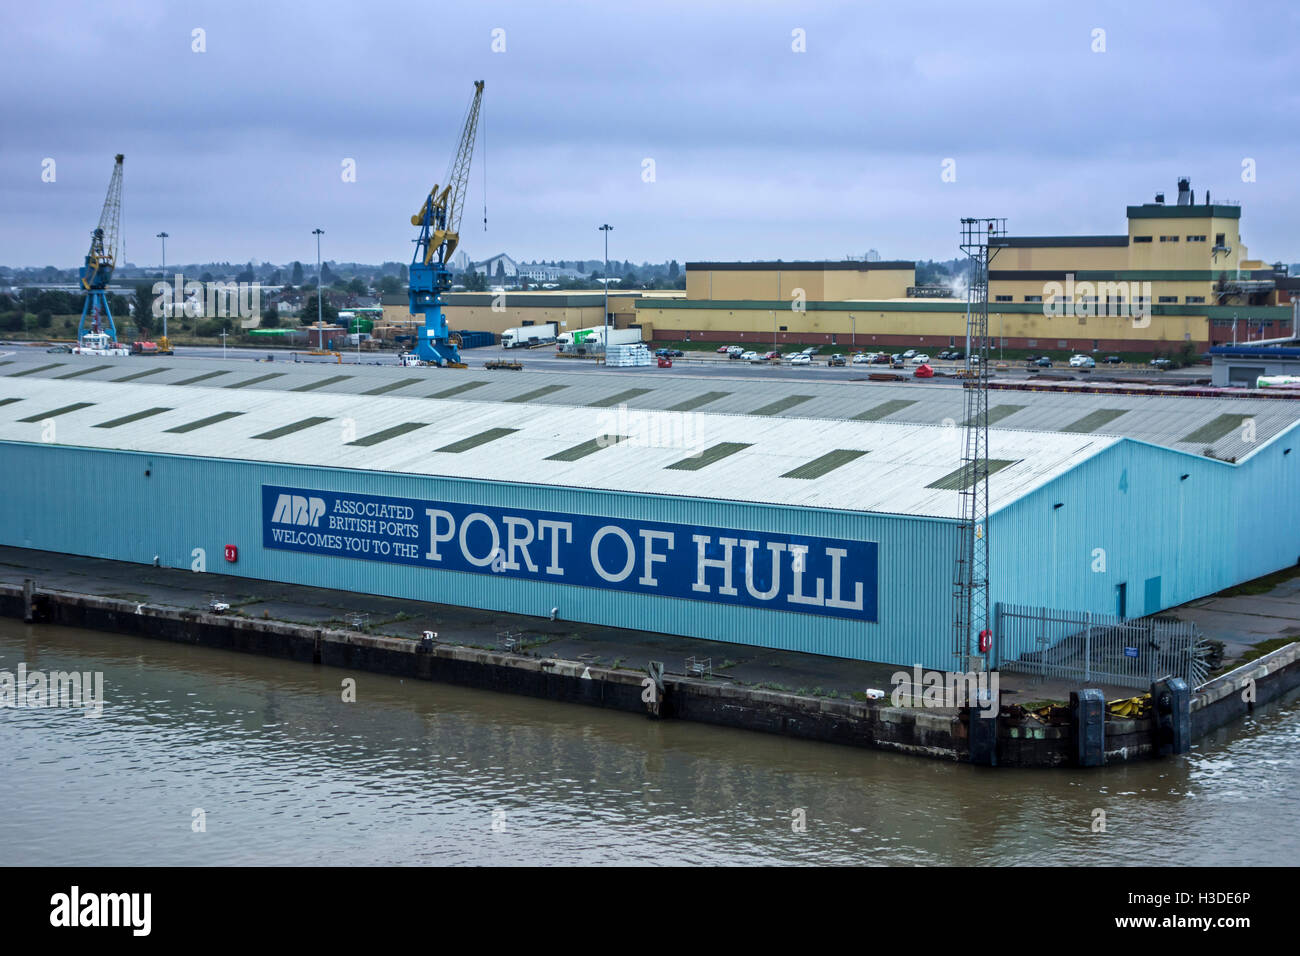 Sign on hangar of the Associated British Ports / ABP in the port of Hull at Kingston upon Hull, England, UK Stock Photo